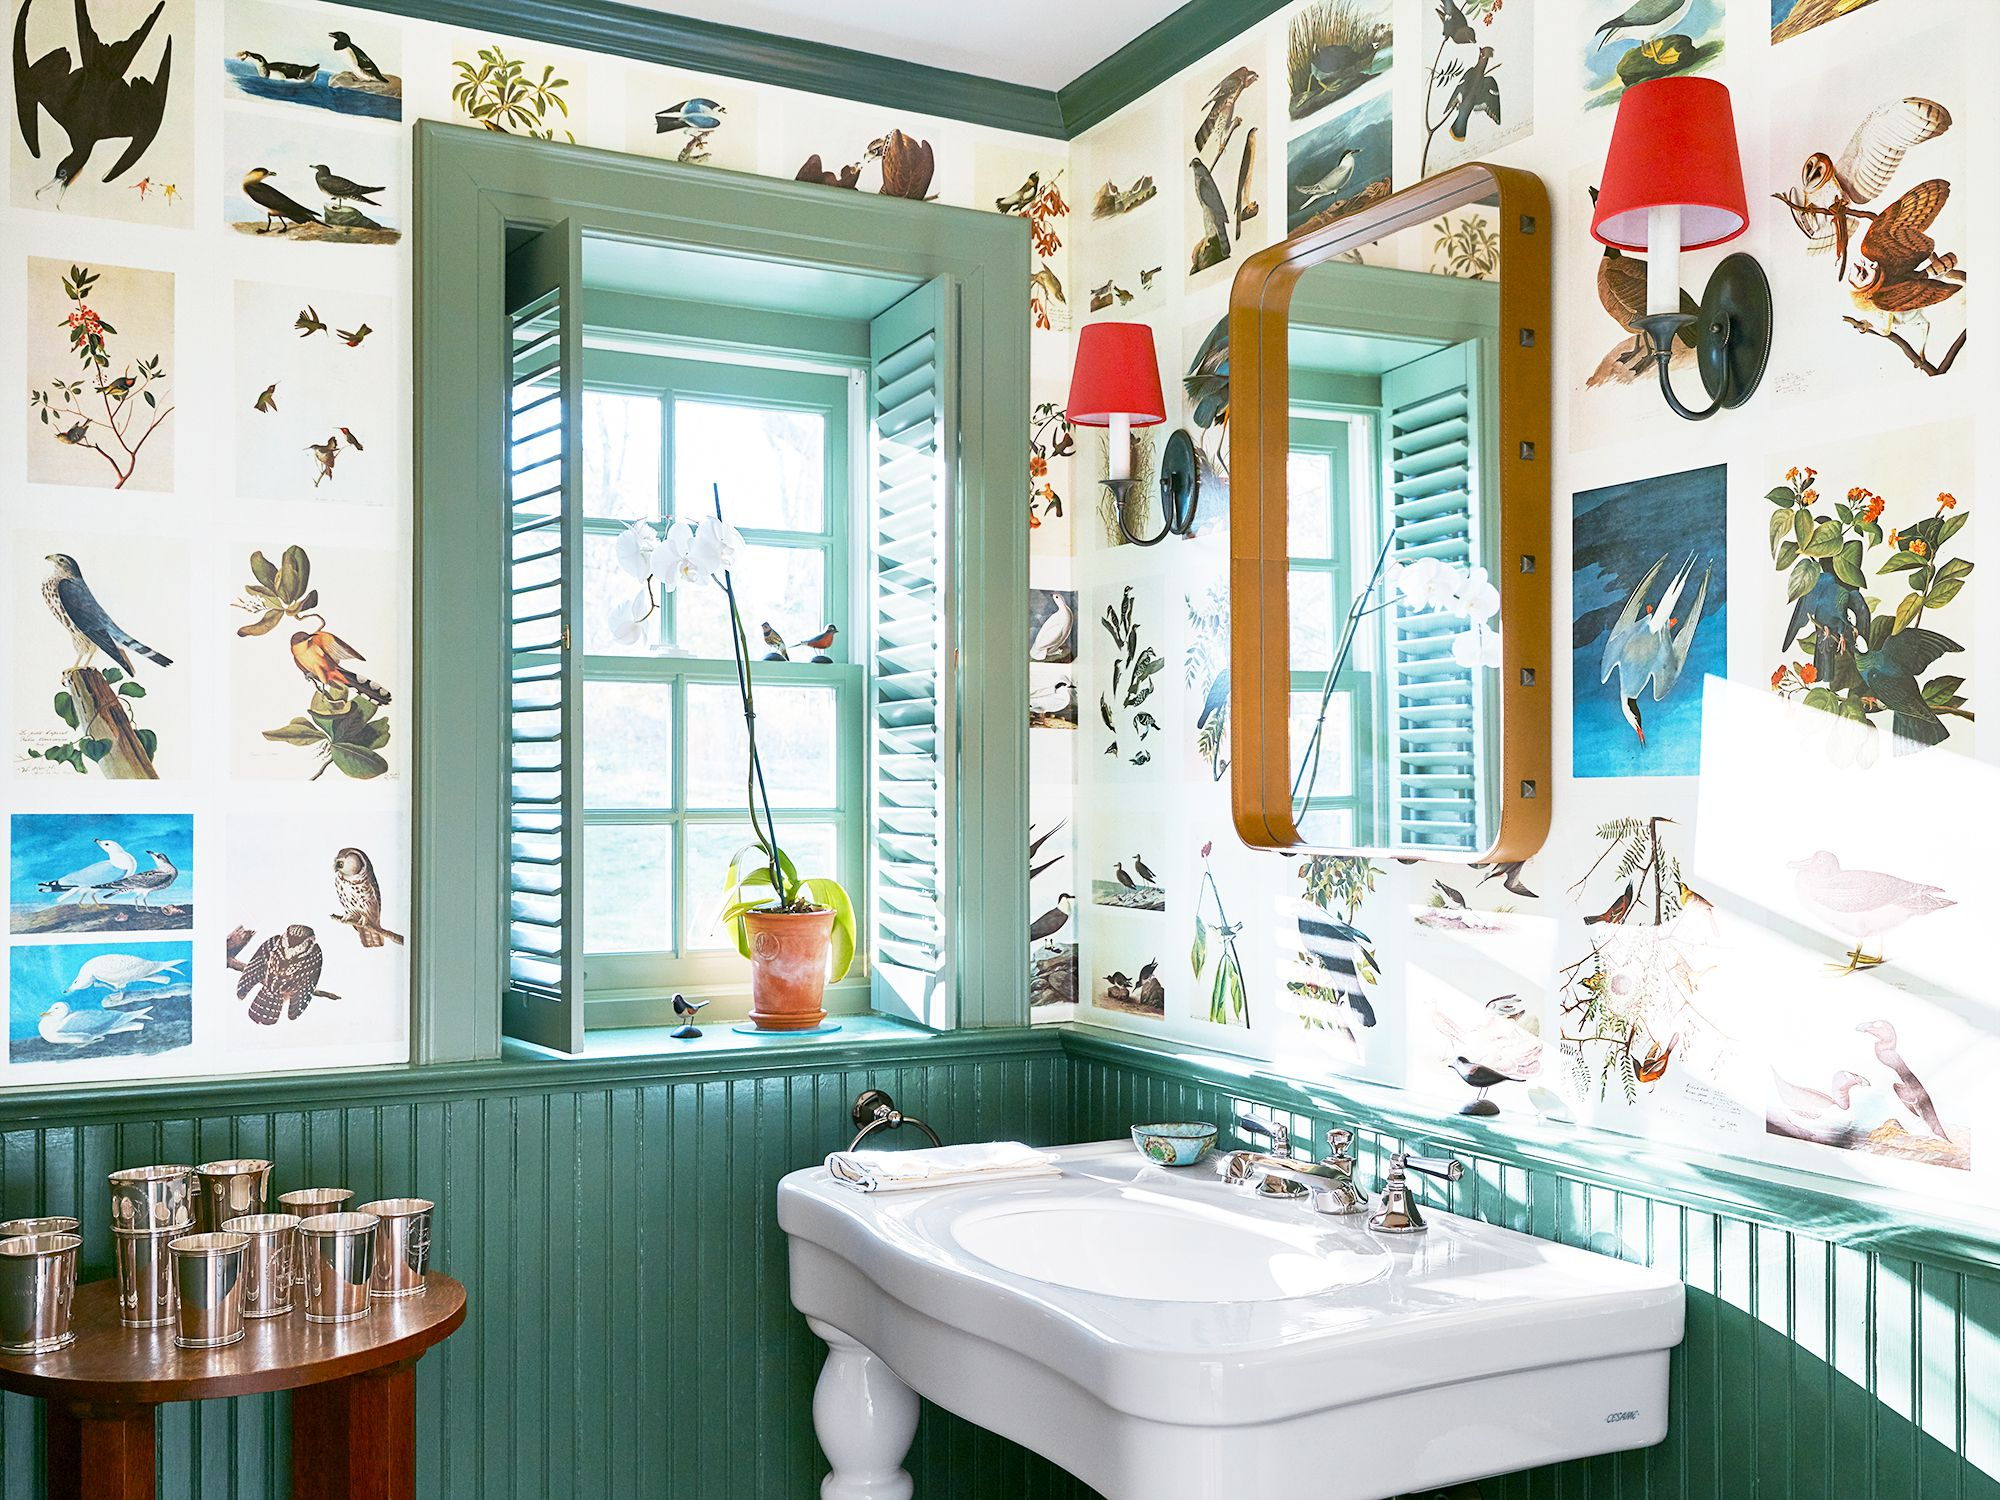 18 Small Bathroom Paint Colors We Love Colorful Powder Rooms,7 Quick And Easy Kitchen Cleaning Ideas That Really Work